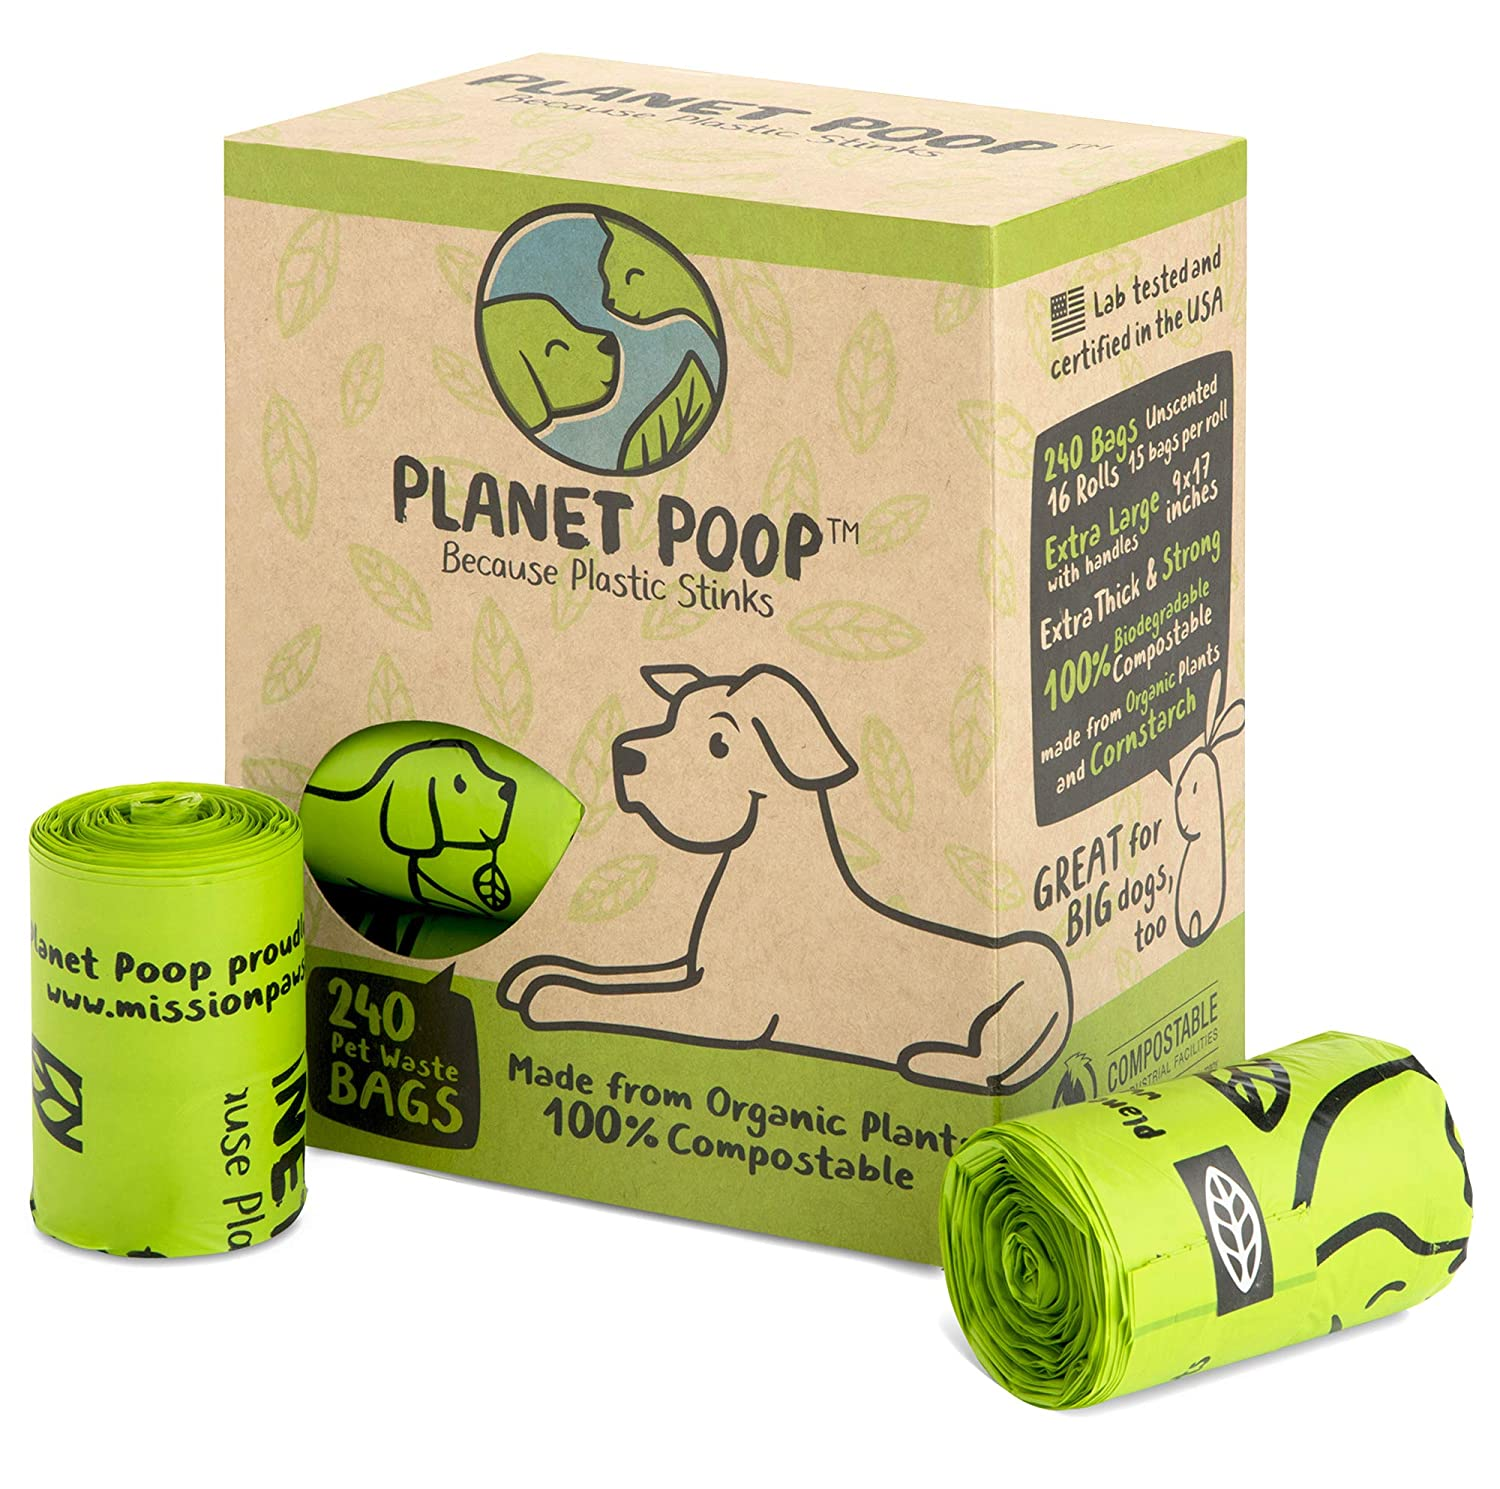 61ef21607f4 Amazon.com : PLANET POOP - Compostable Biodegradable Dog Poop Bags ...